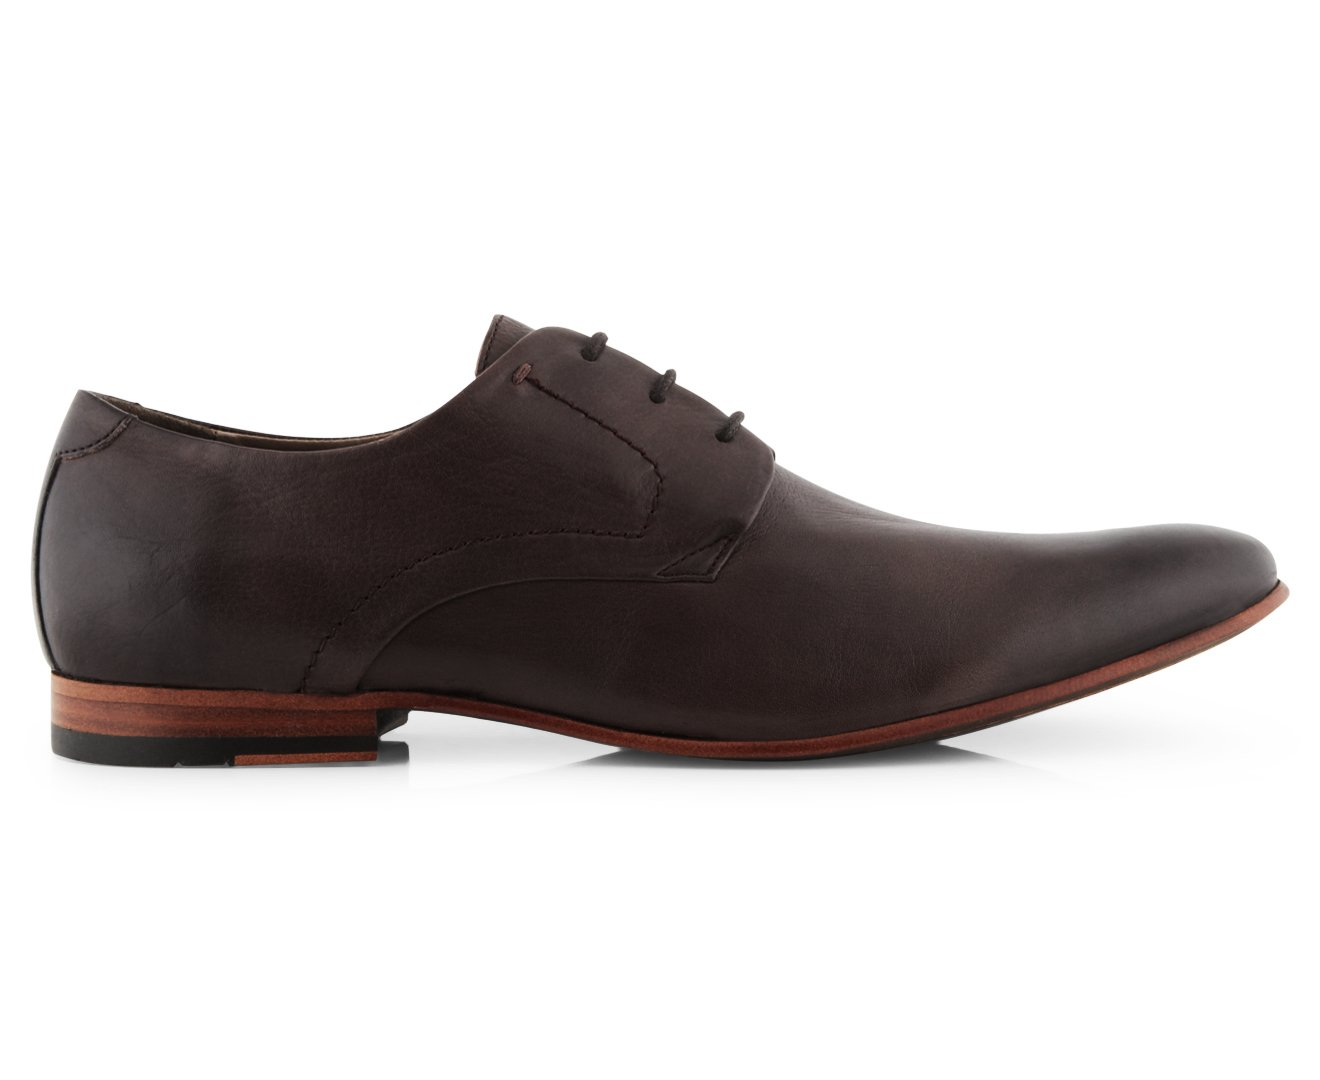 5b1ebd47fcf Aquila AQ by Men's Christopher Business Leather Shoe Brown: Amazon ...